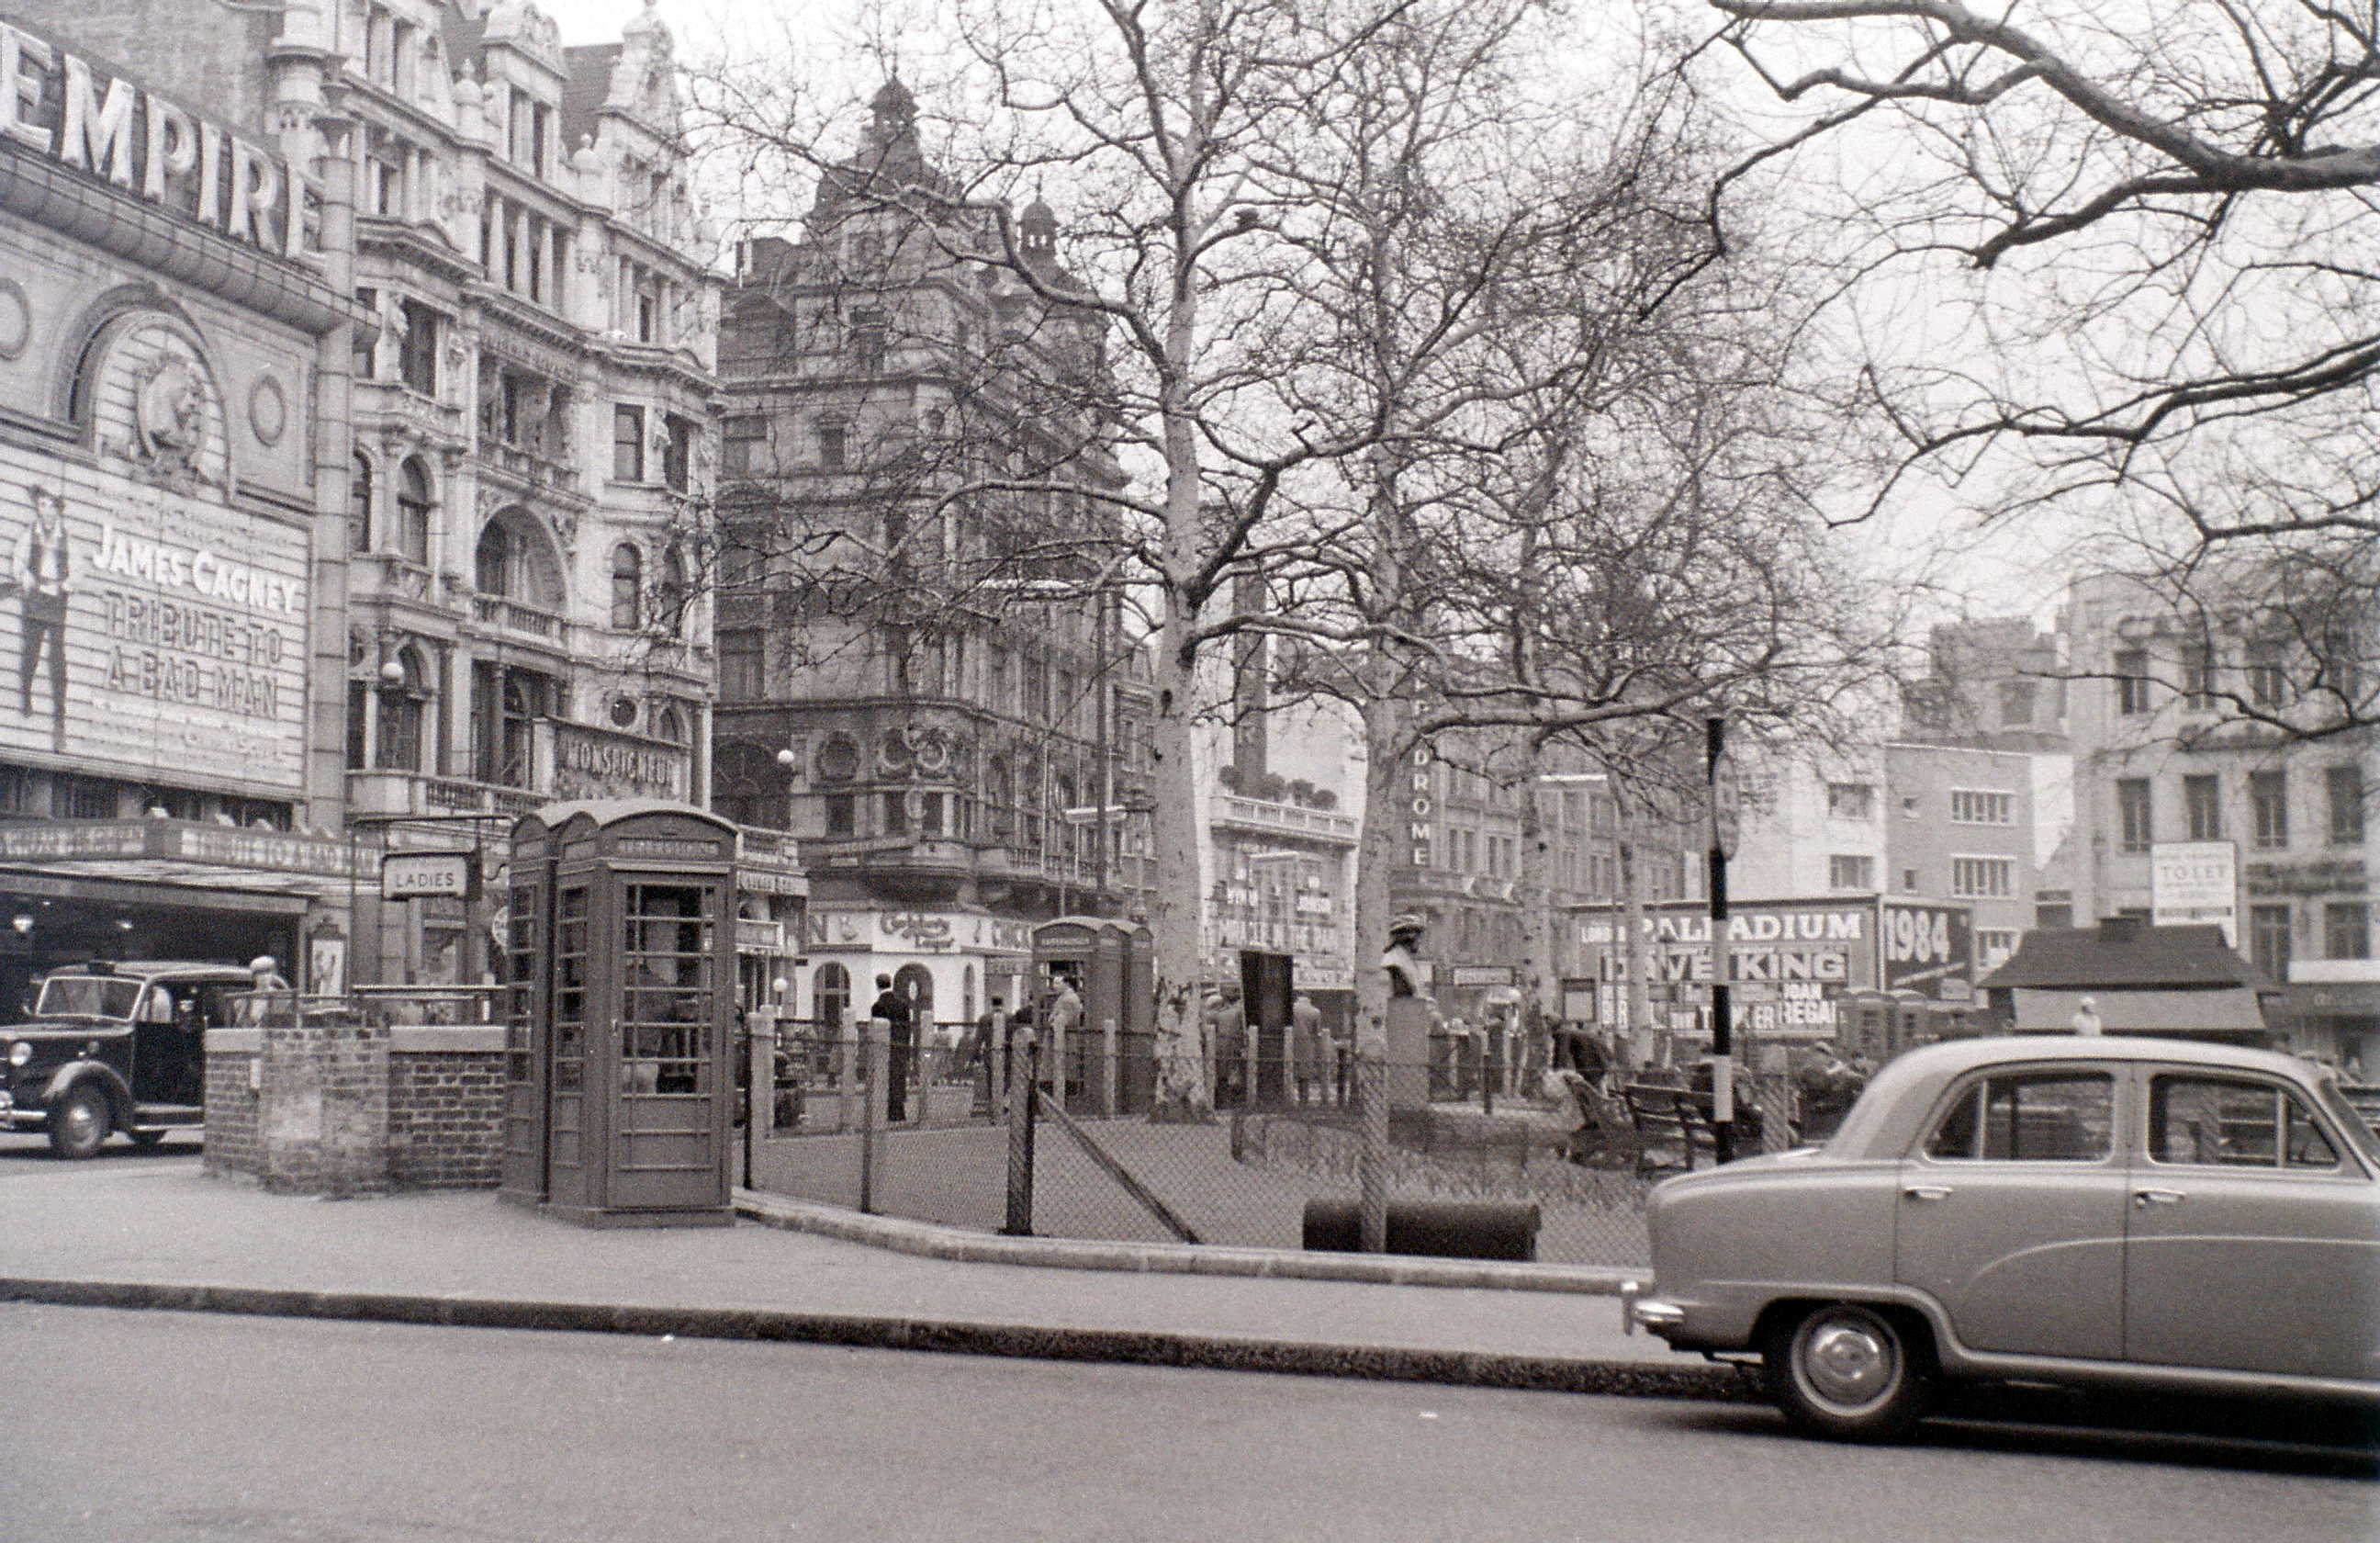 Leicester Square, London, 2 April 1956.